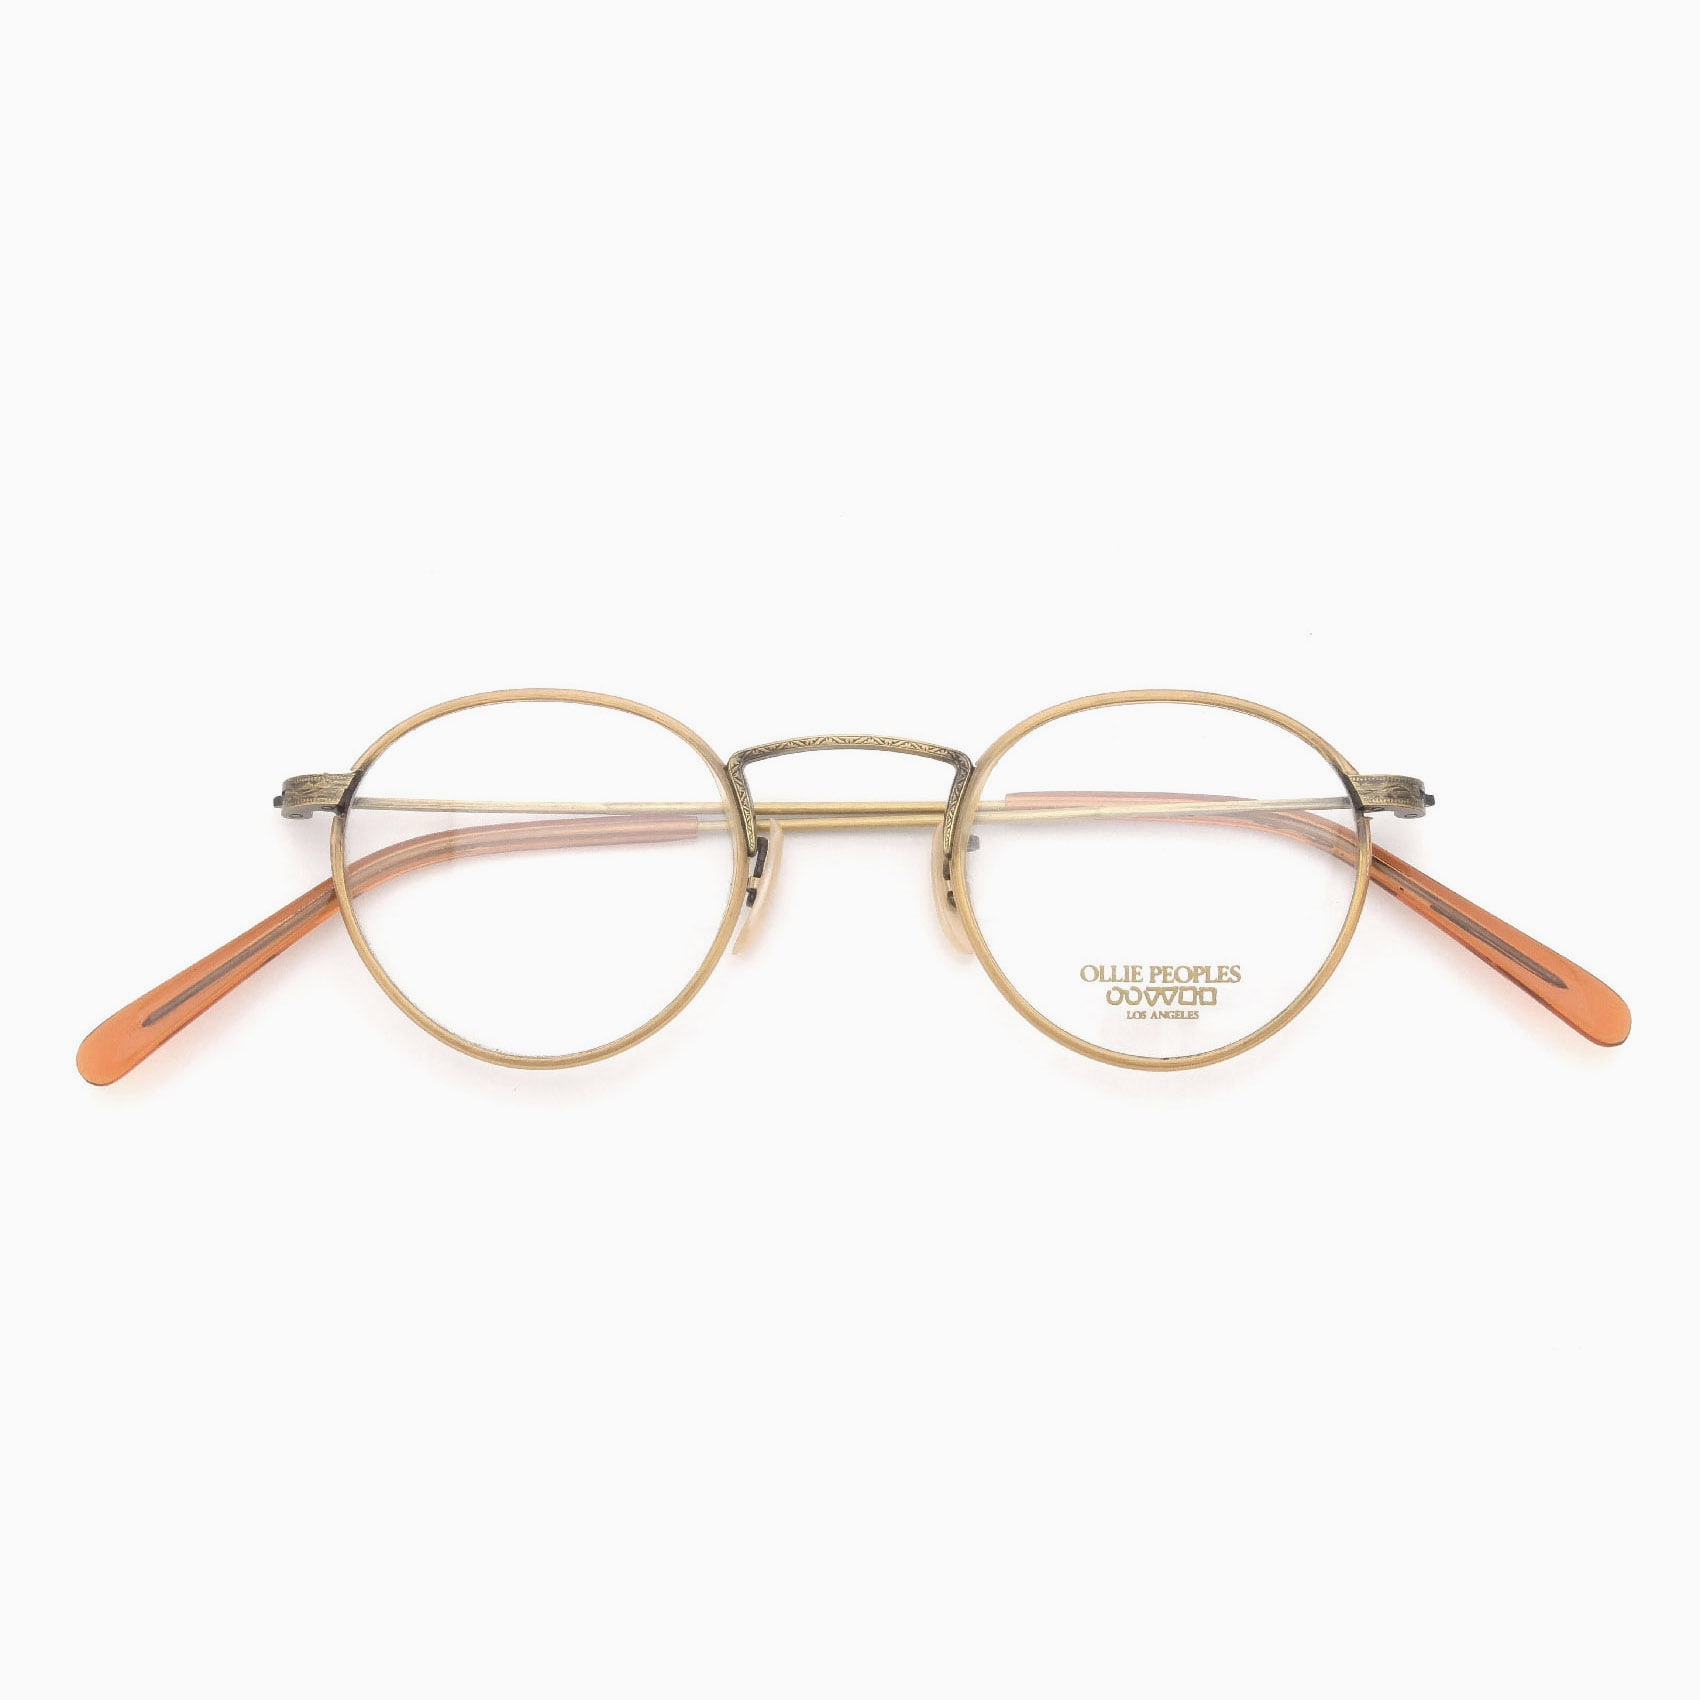 OLIVER-PEOPLES-ARCHIVE_Souse_RB-AG_1